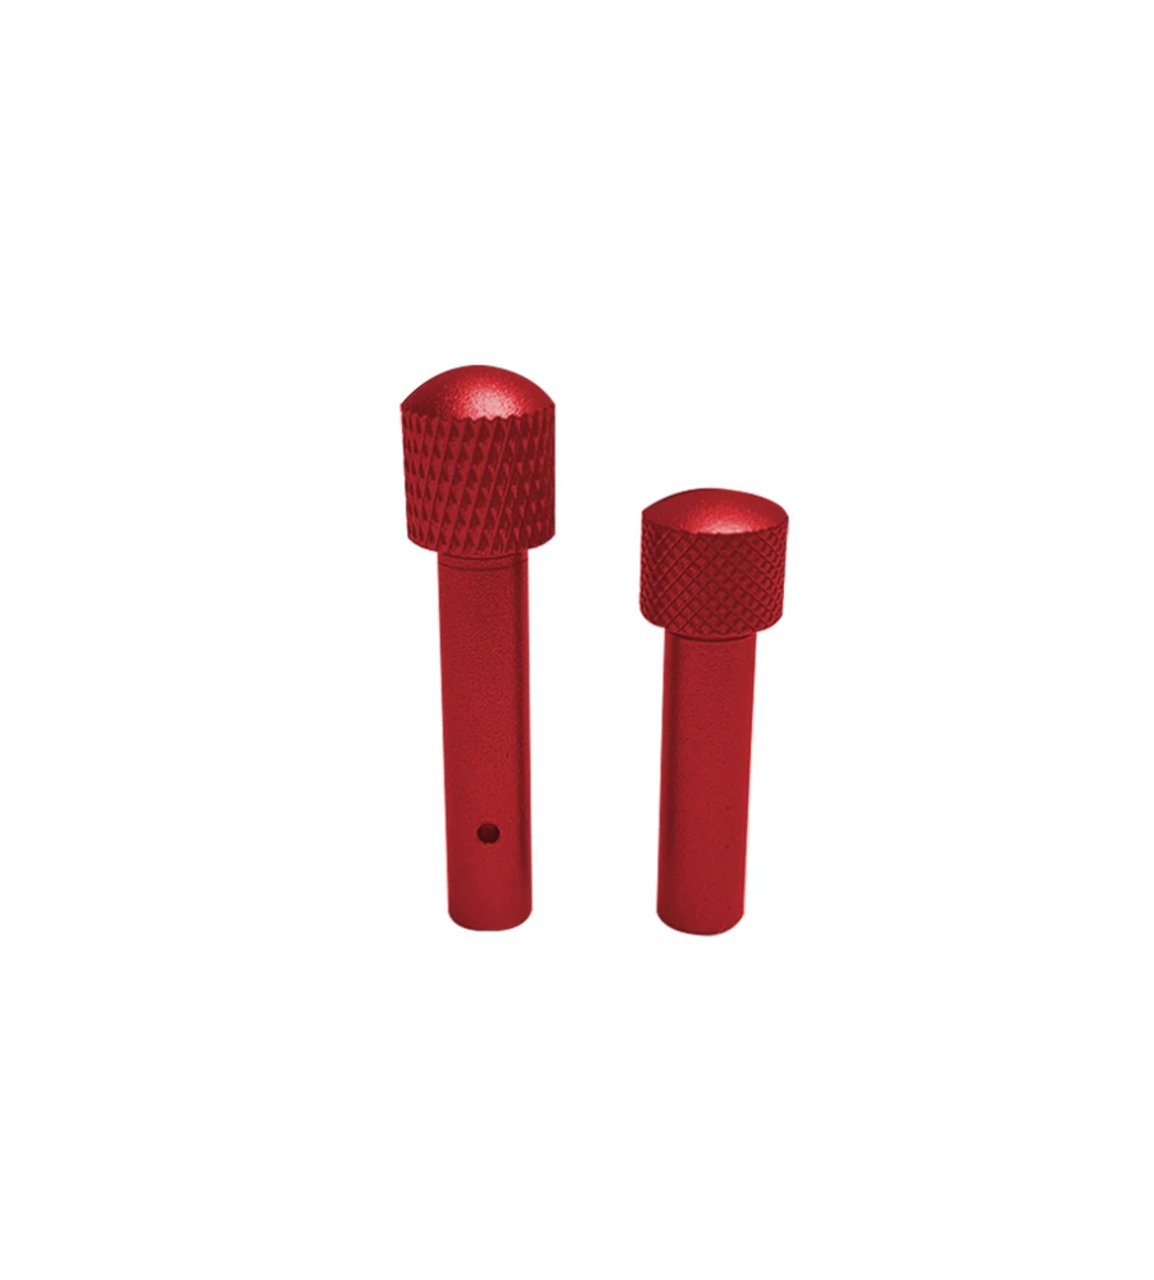 Anodized Extended Takedown Pins